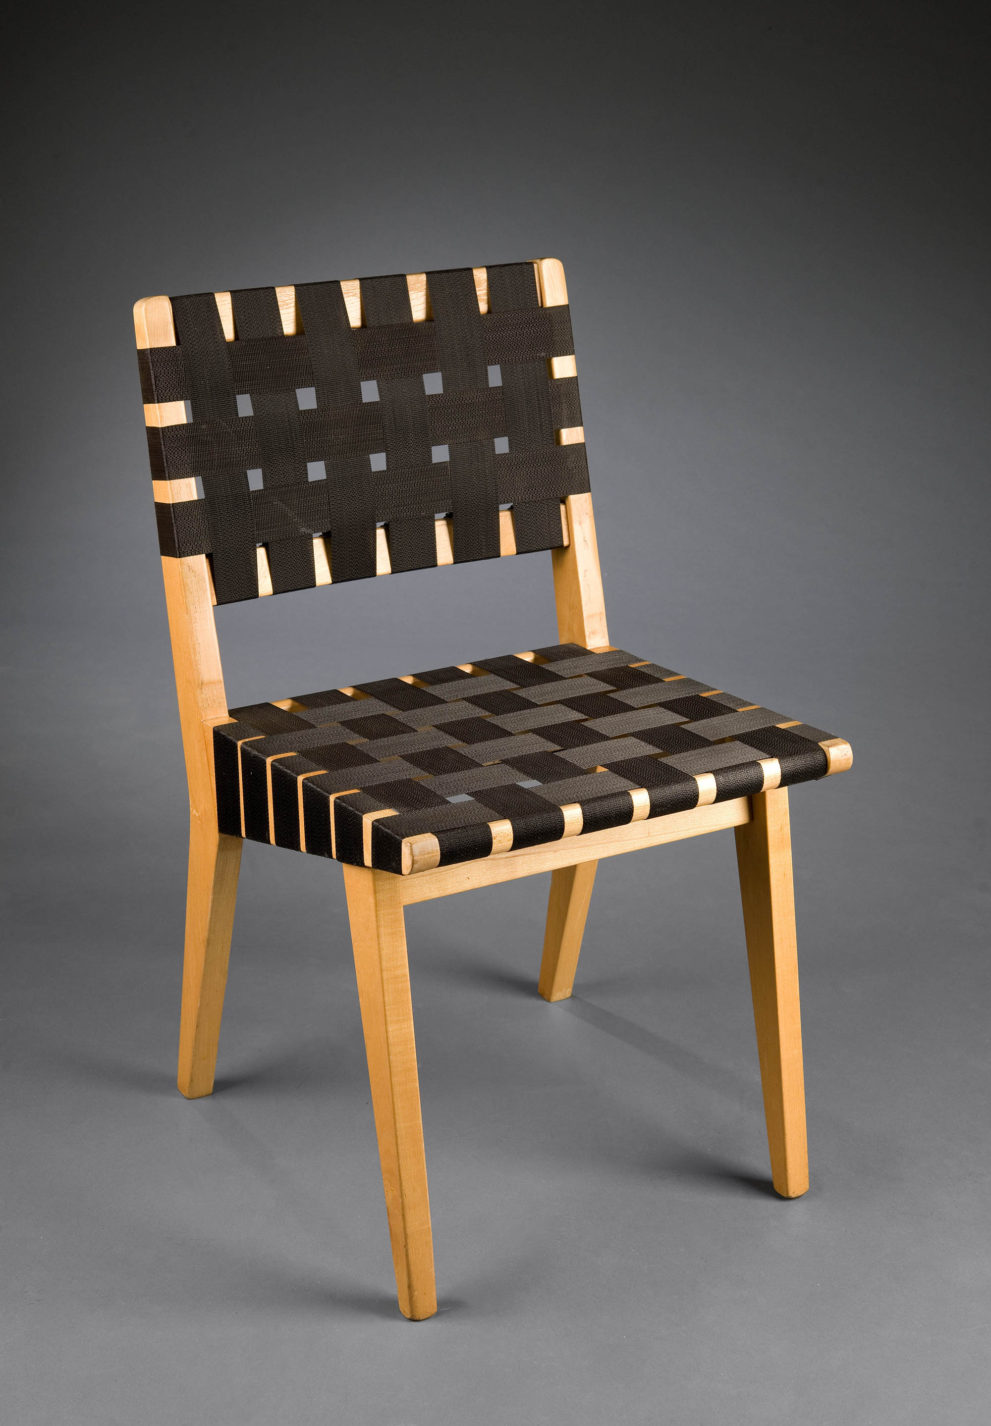 Chair with a simple wooden frame with seat and back formed by woven strips of plastic webbing.